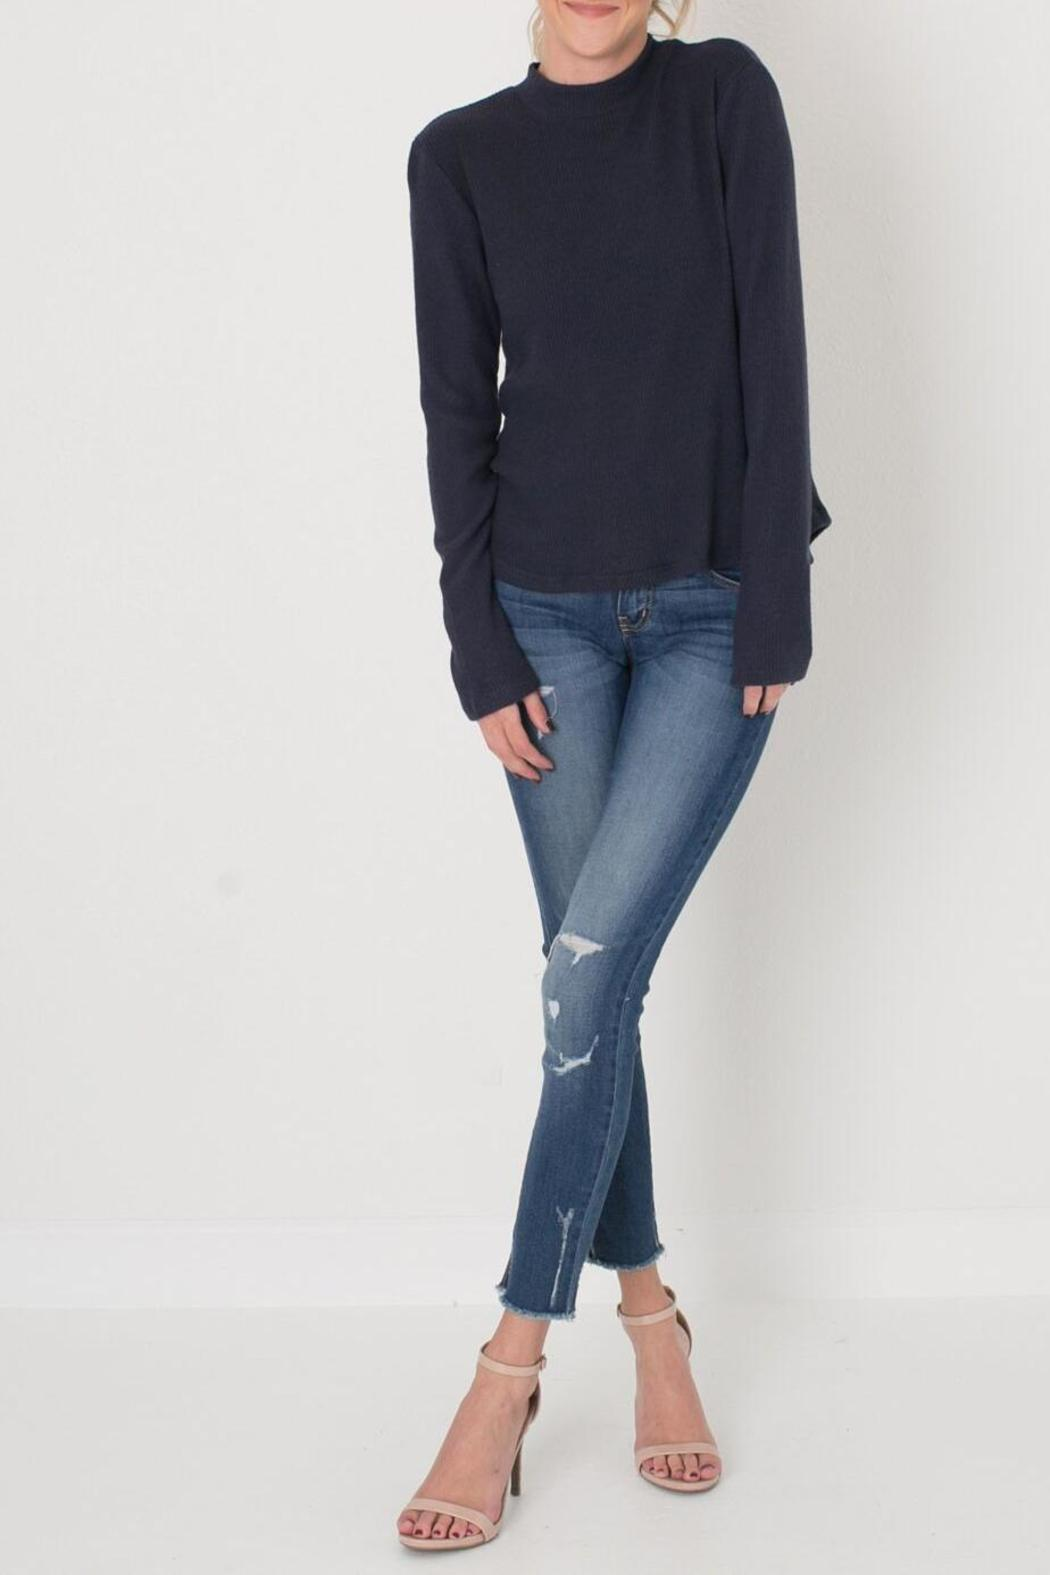 bbbfb242d26 Sadie   Sage Lace Up Ribbed Top from Colorado by Apricot Lane ...